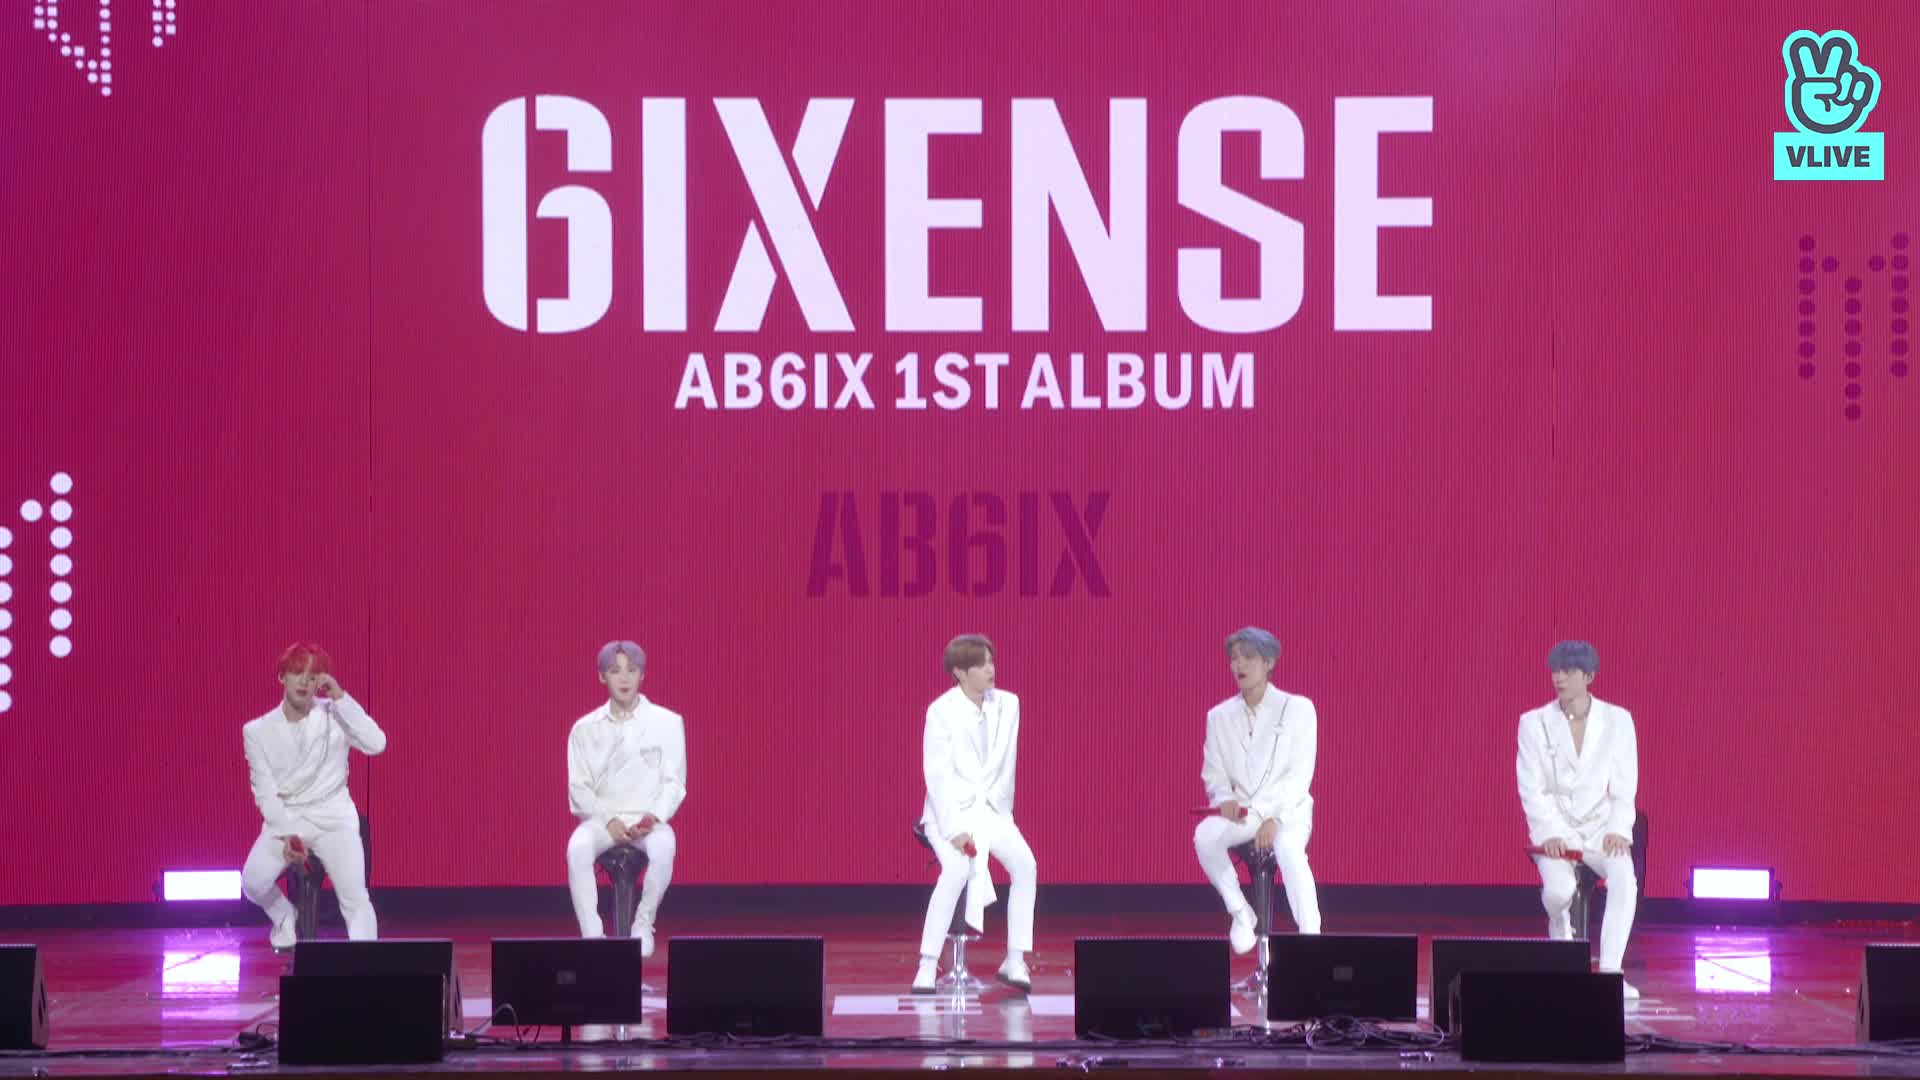 [Replay] AB6IX 1ST ALBUM [6IXENSE] SHOWCASE